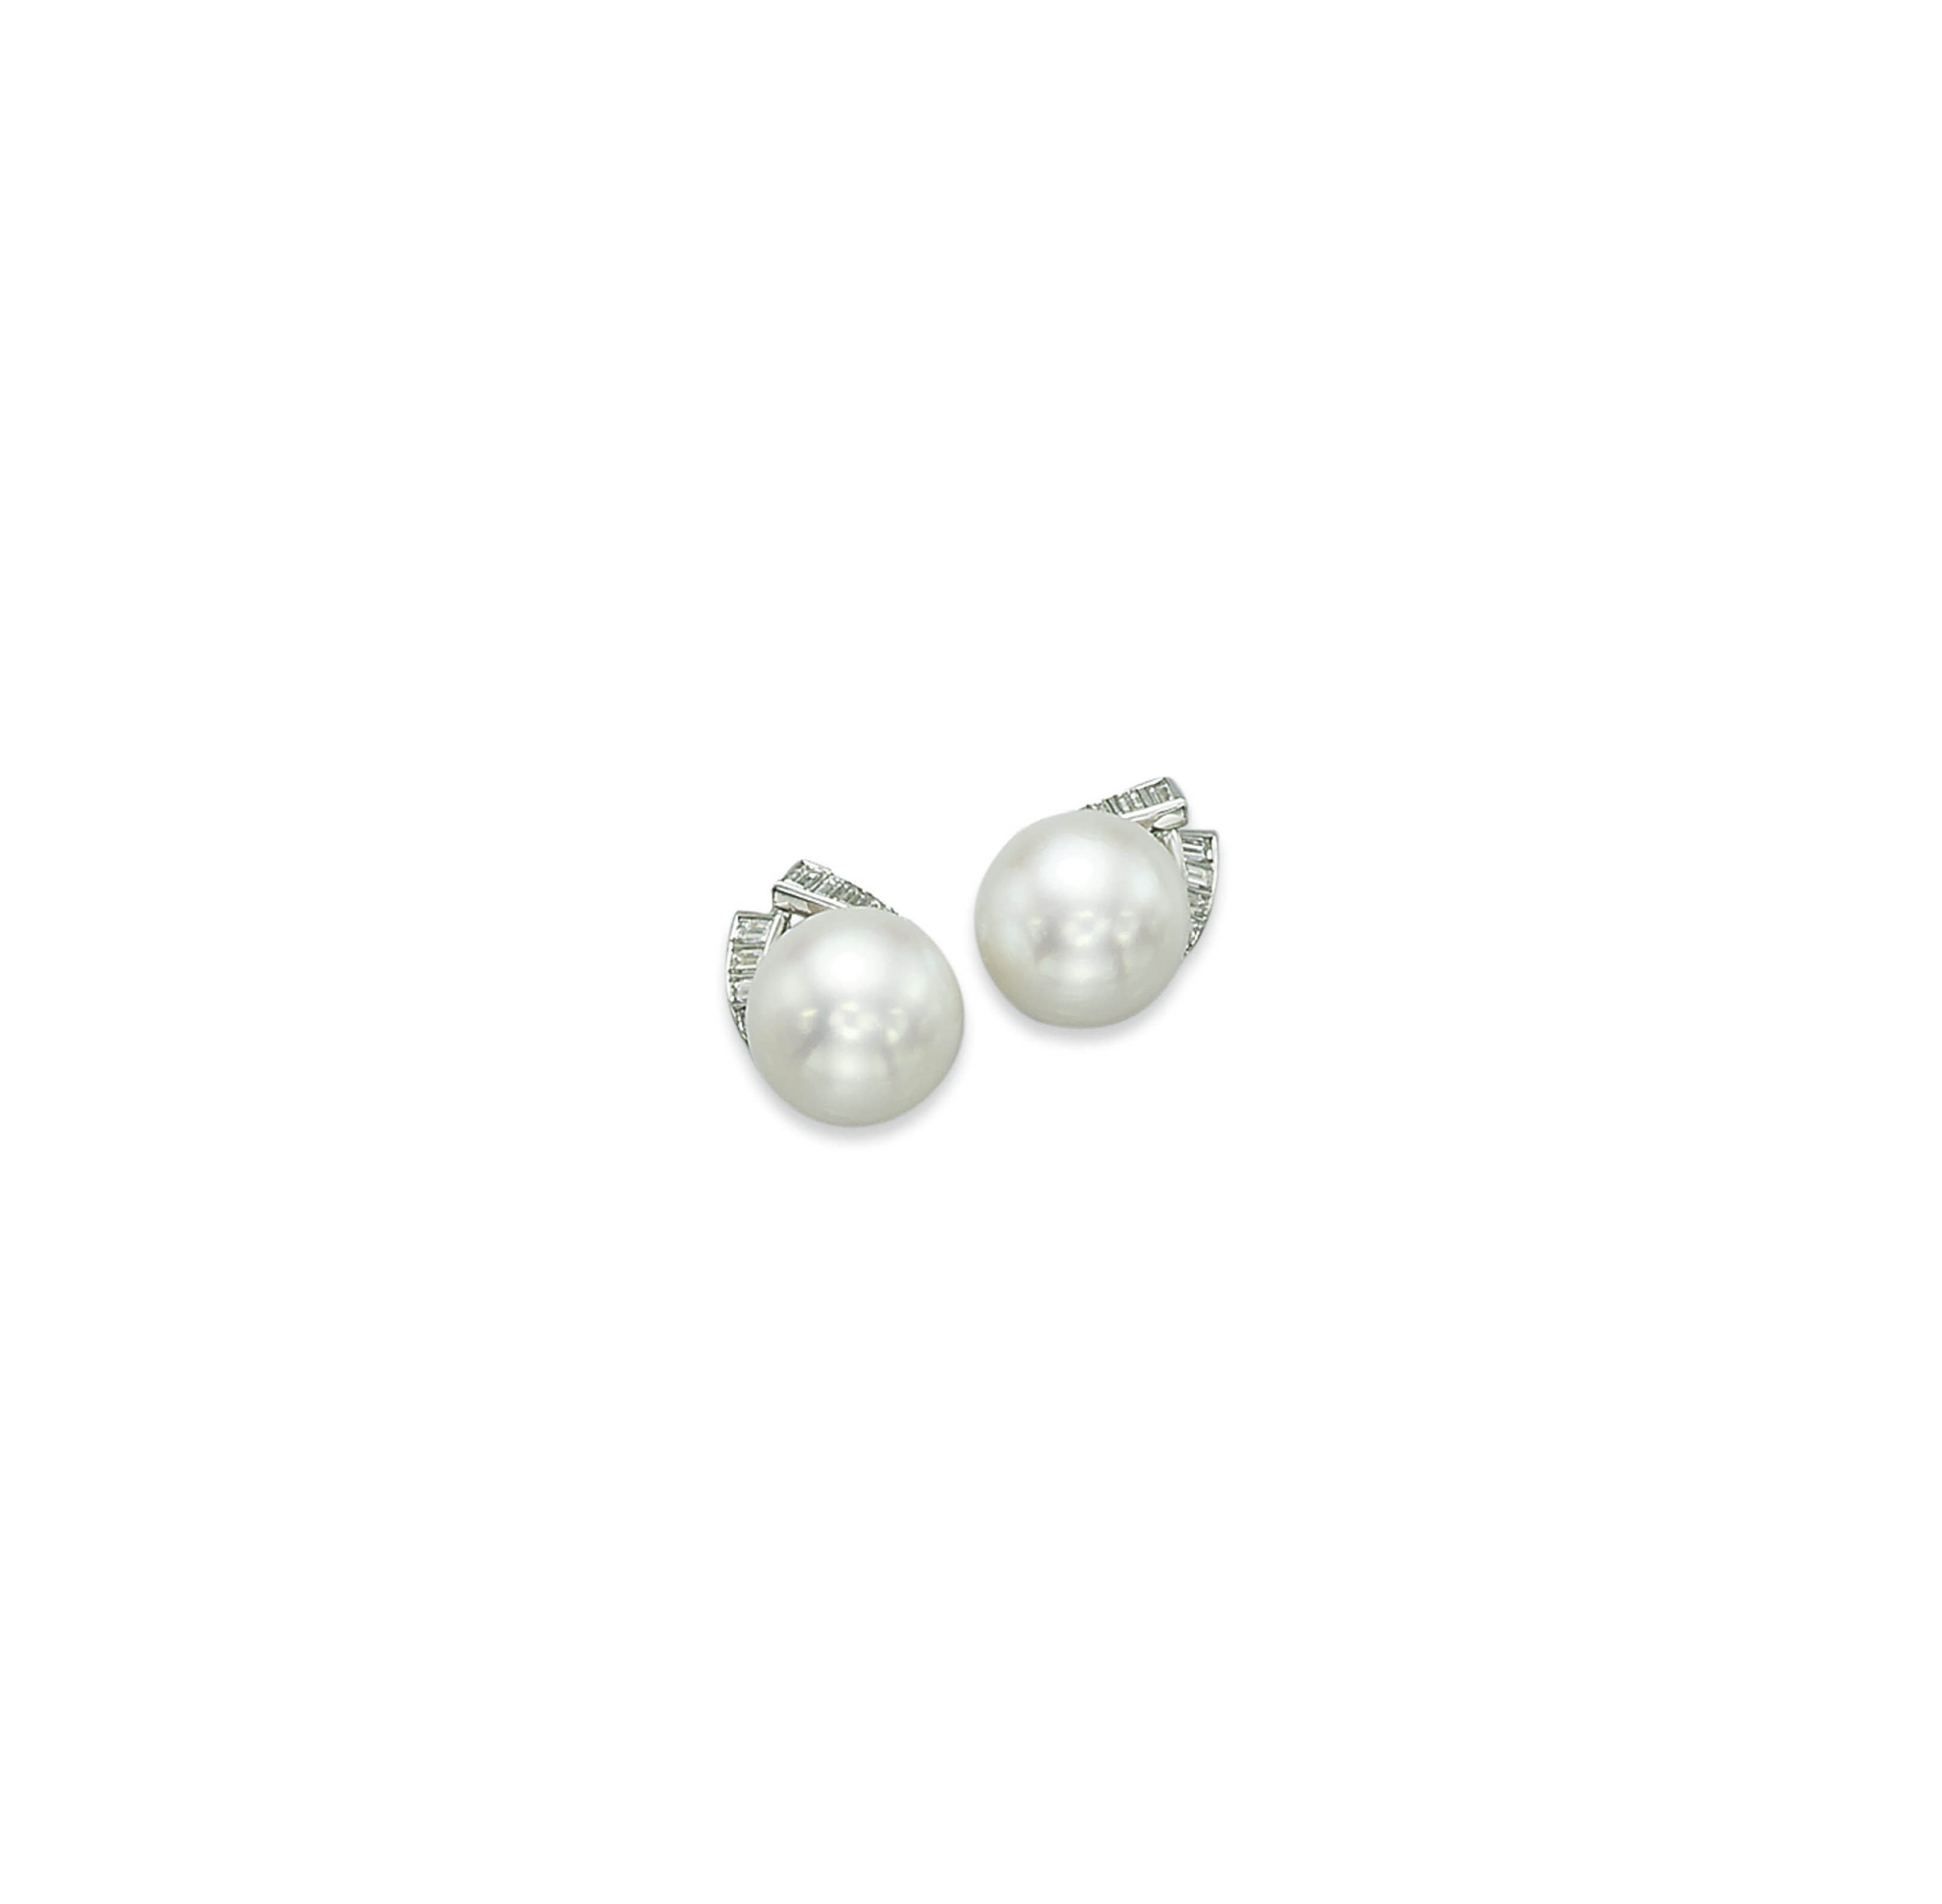 A PAIR OF CULTURED PEARL AND DIAMOND EAR CLIPS, BY MEISTER